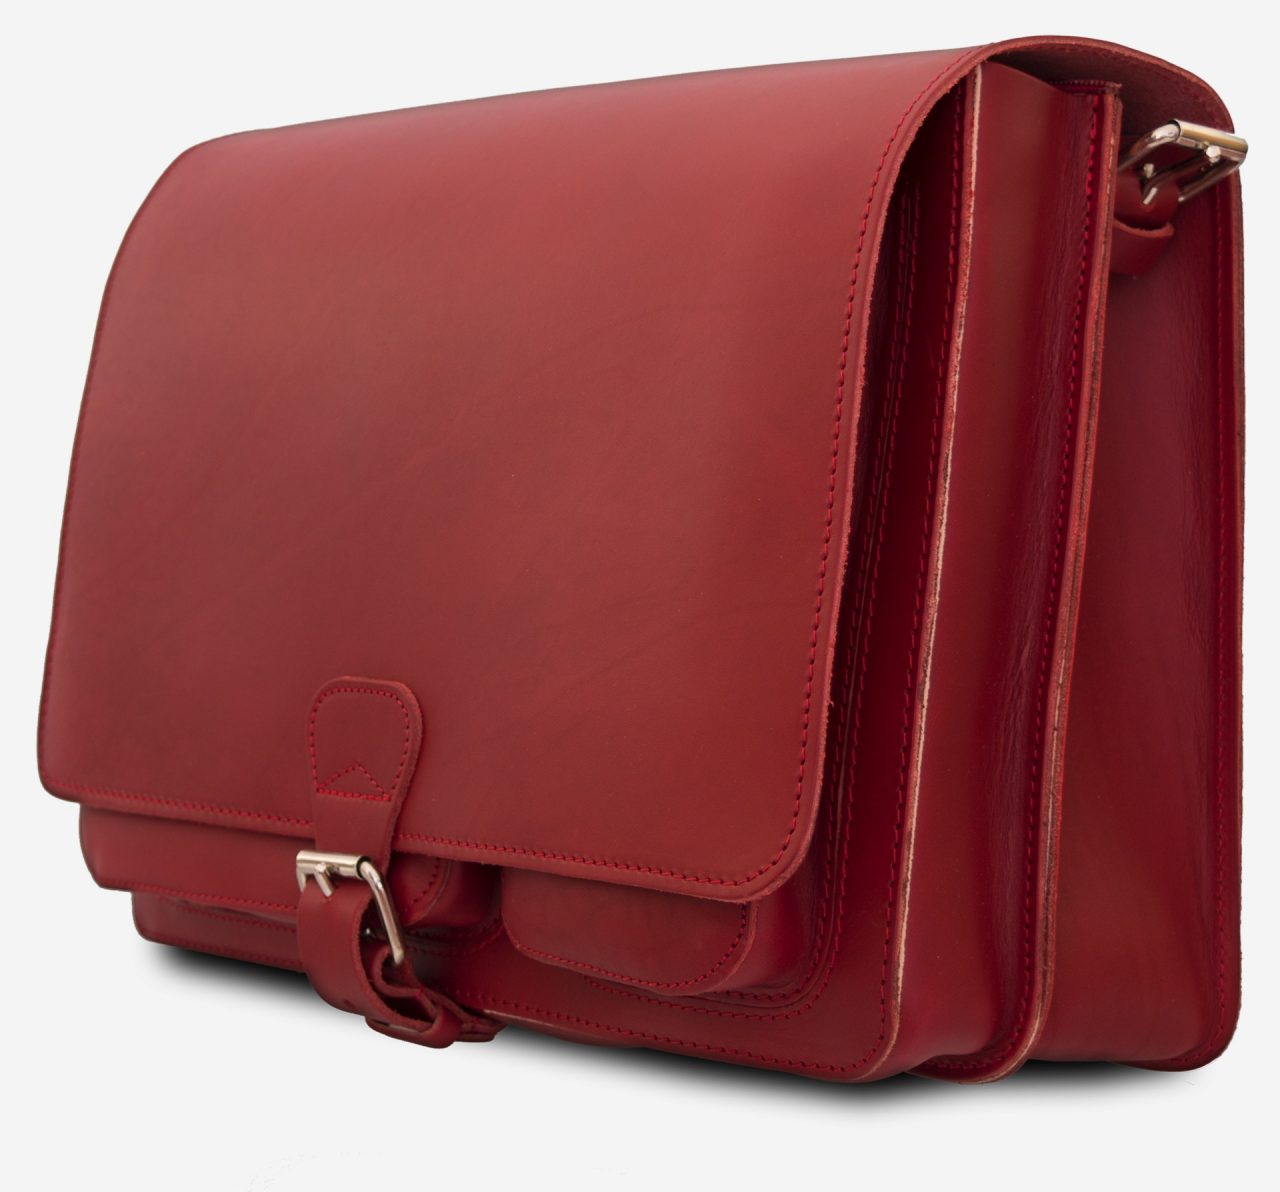 Side view of large red leather messenger bag with 2 gussets and asymmetric front pockets for women - 152537.